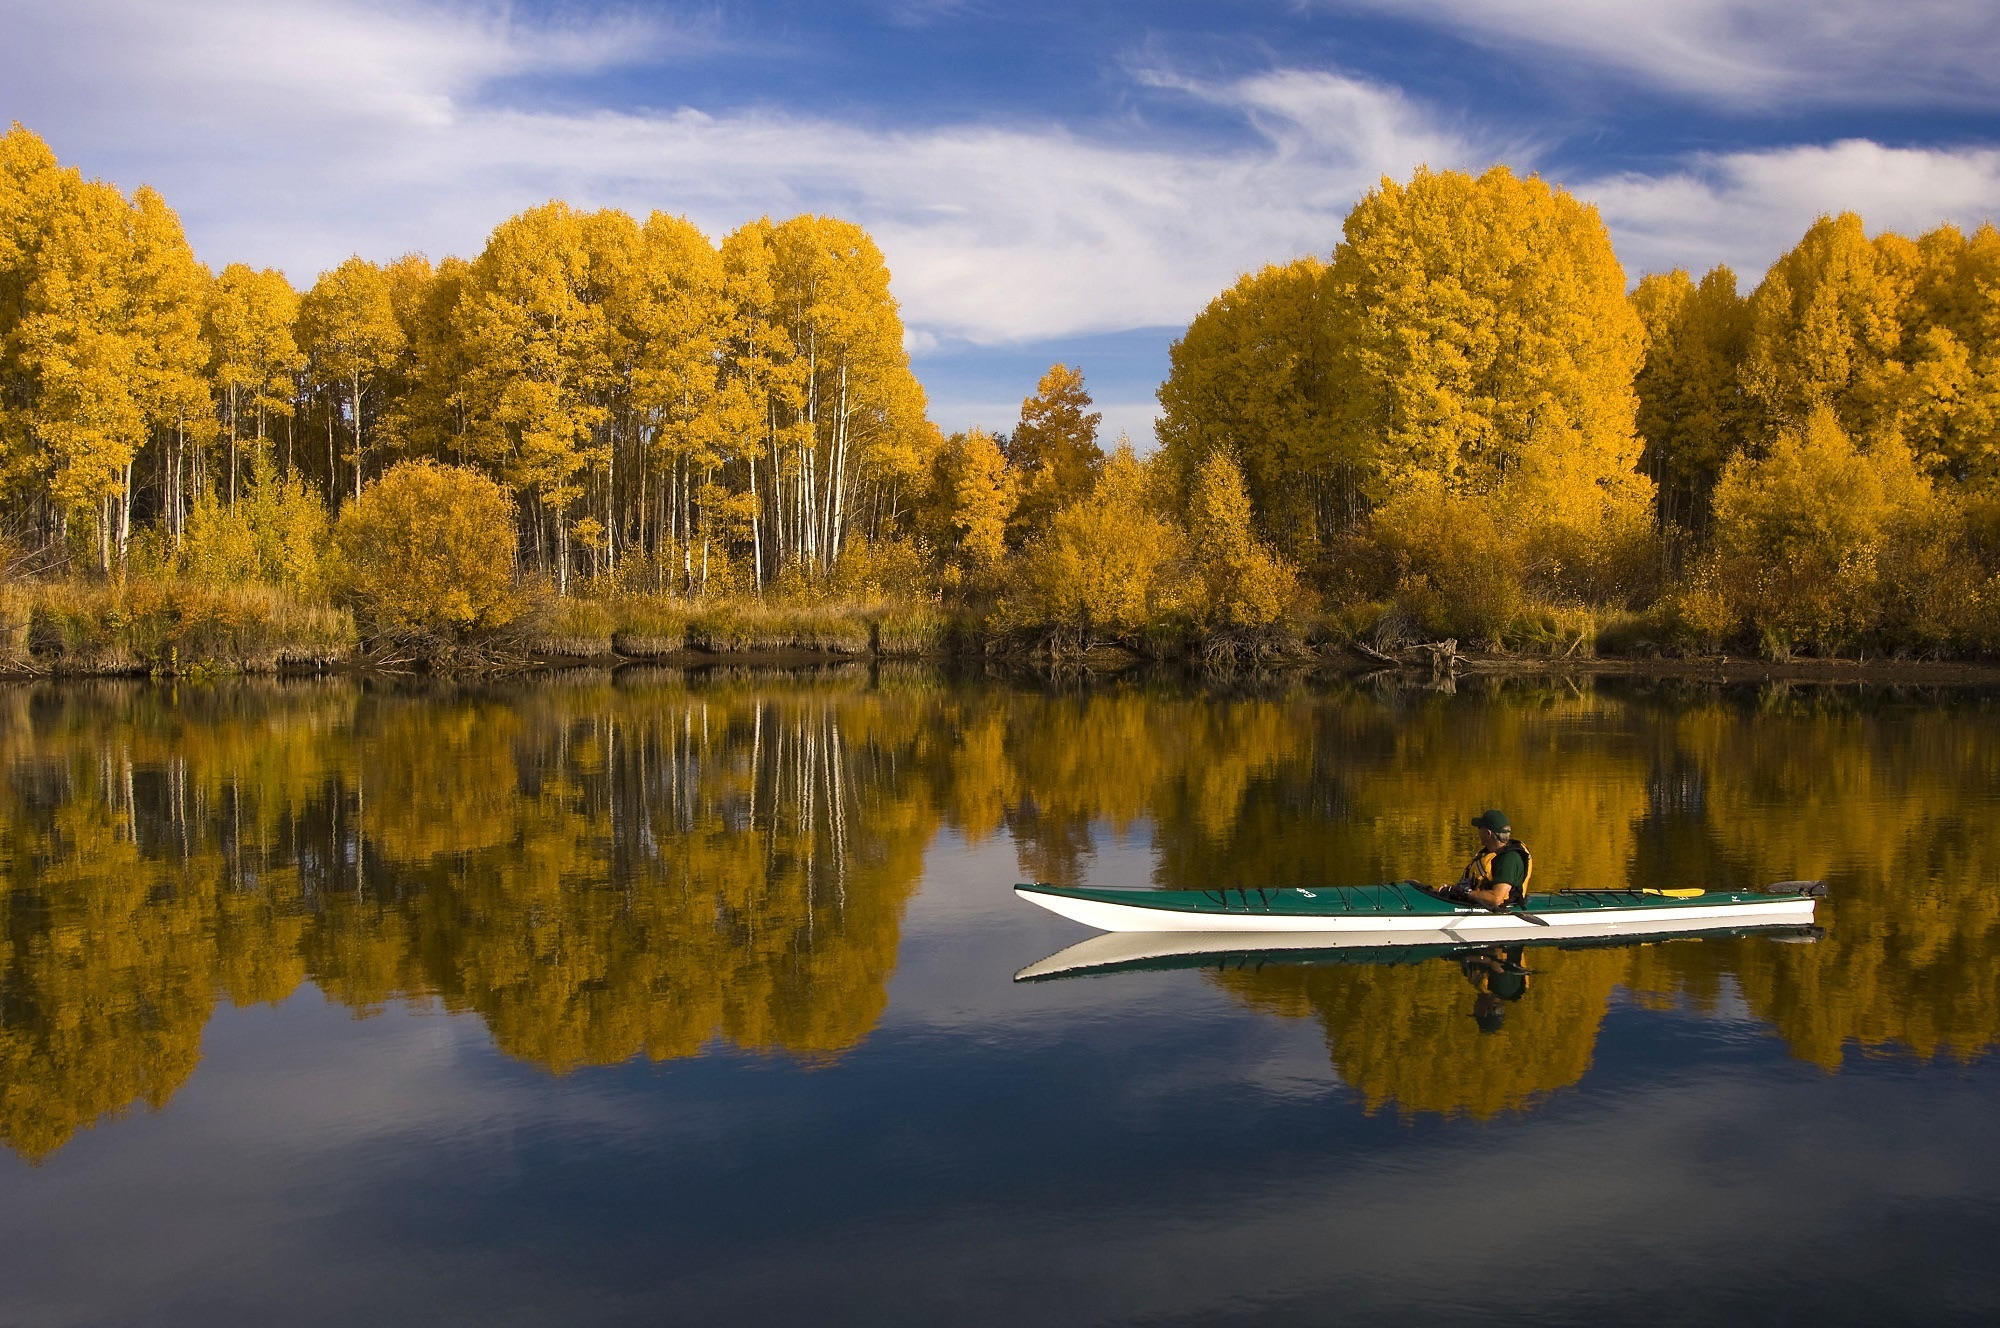 A kayaker rests in an autumn lake.